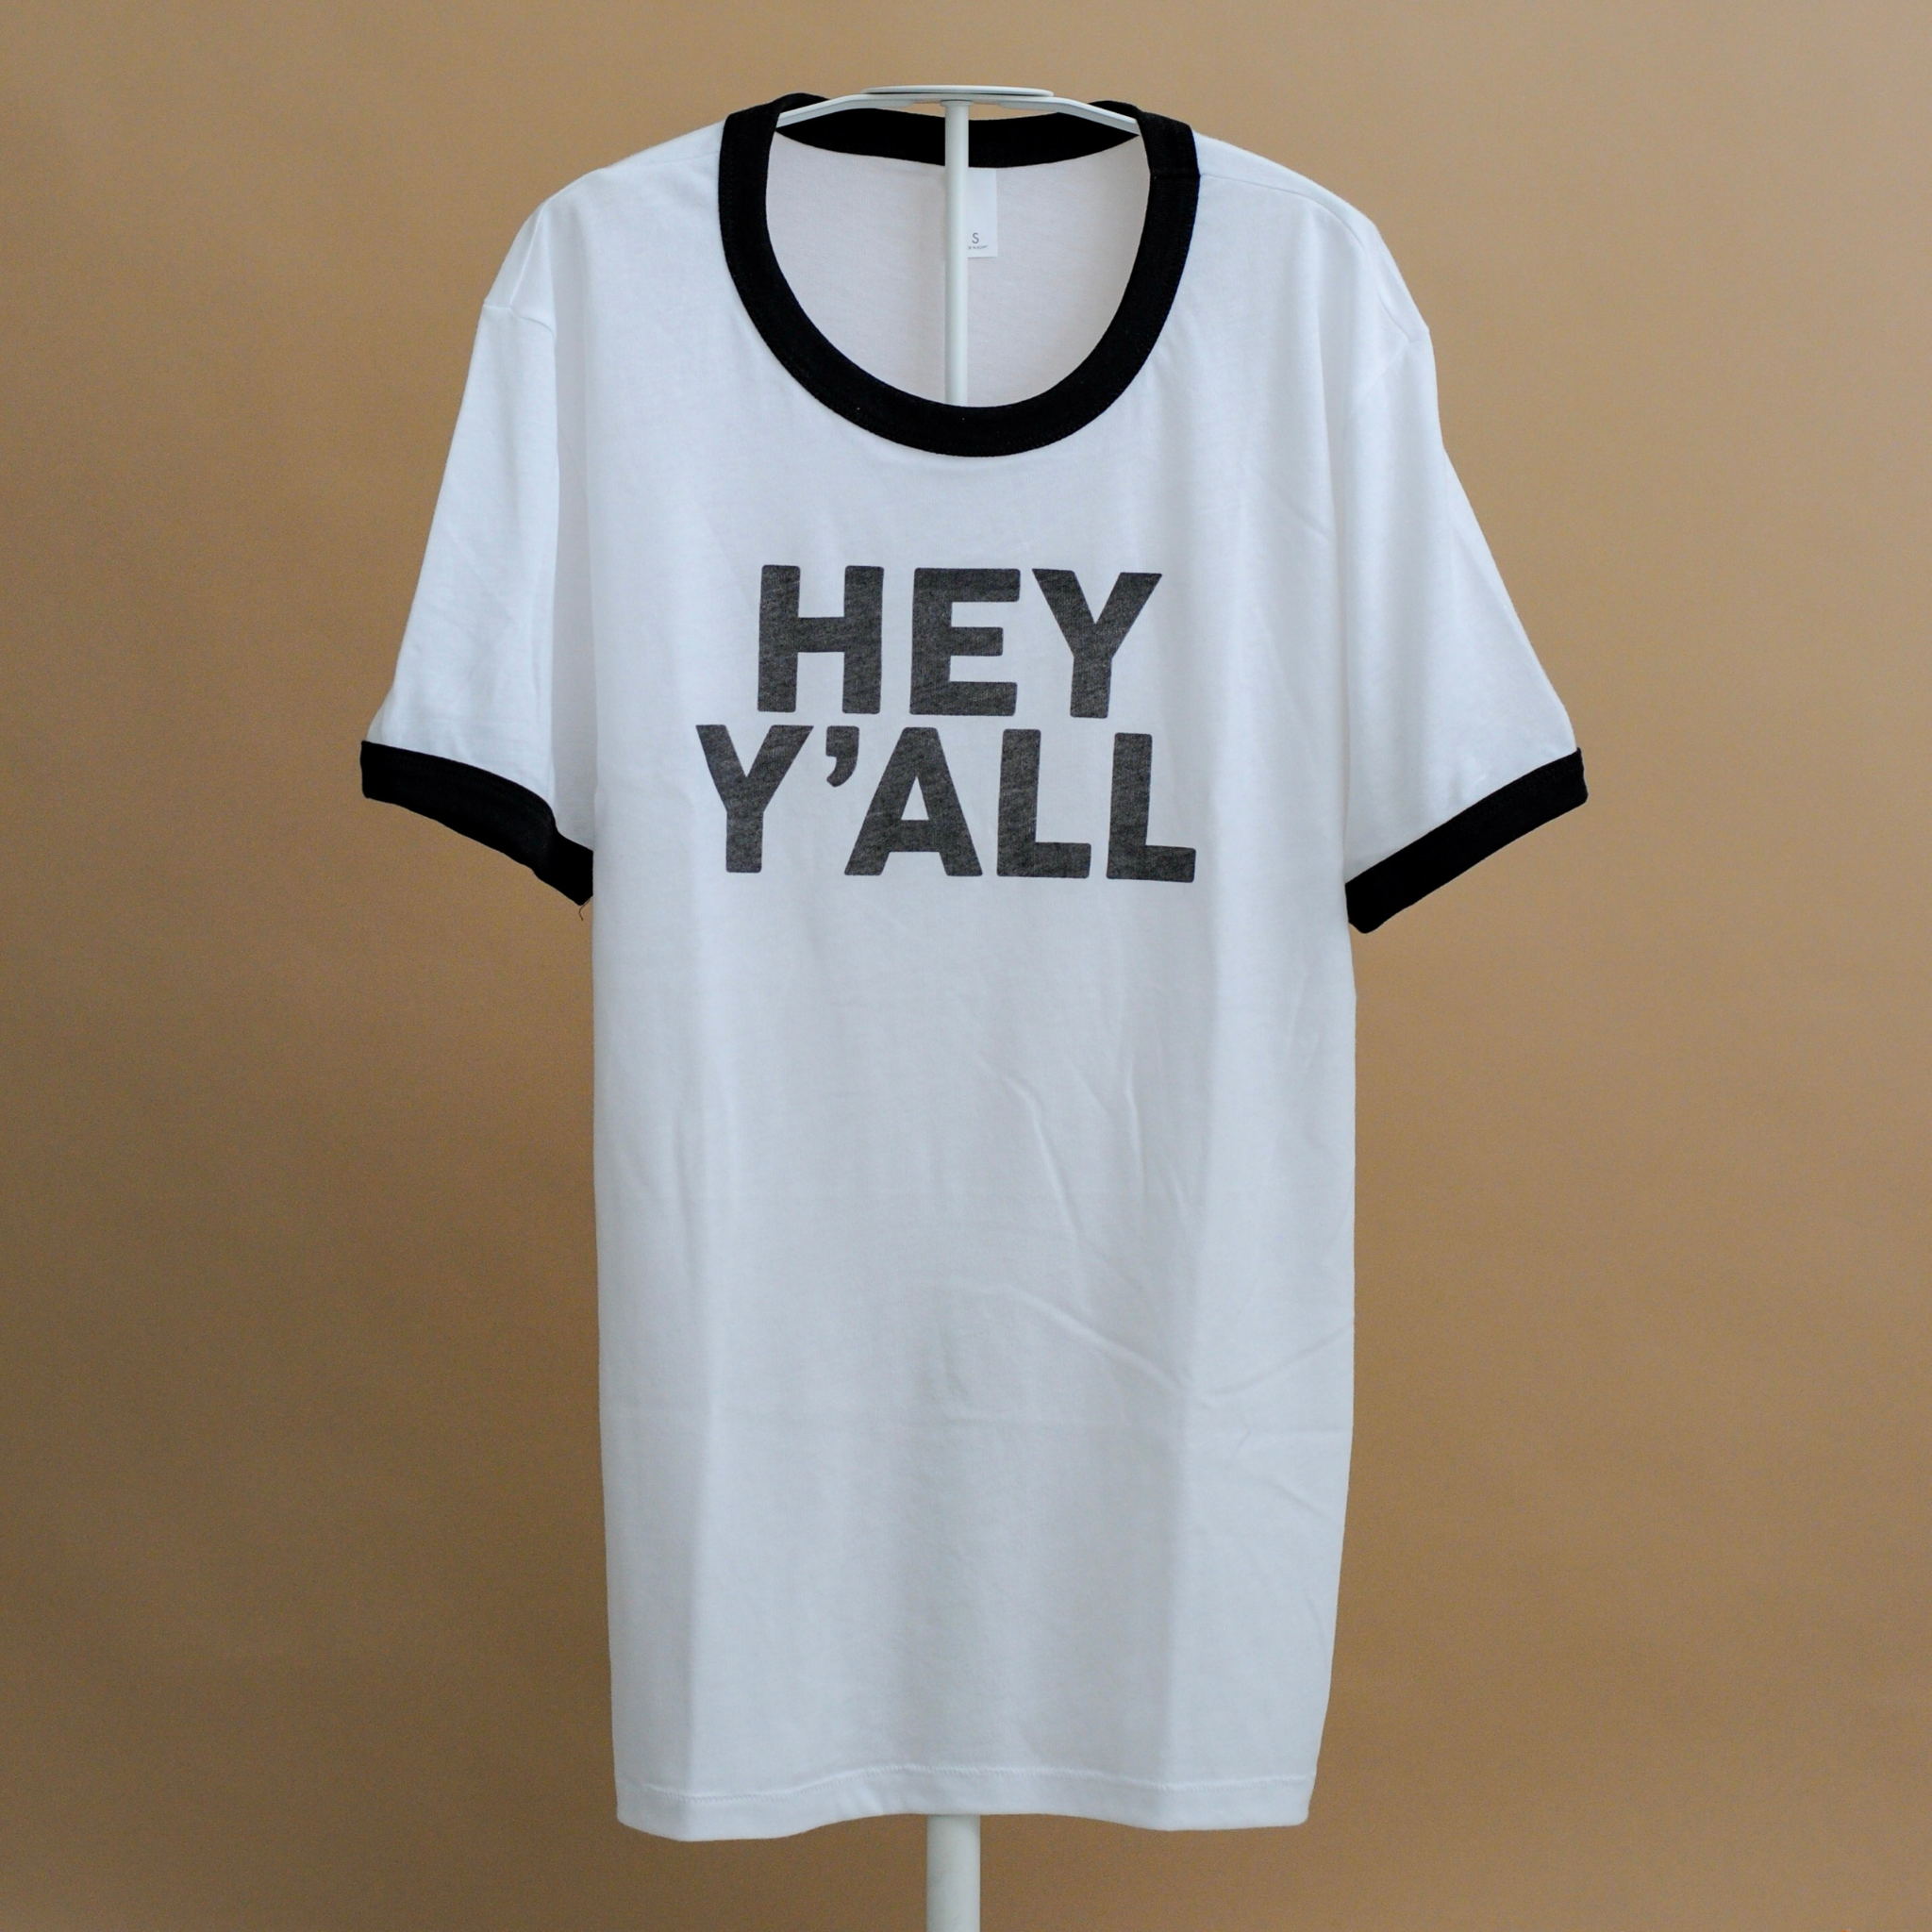 Hey Y'all Youth Ringer Tee from Honey Darling Company